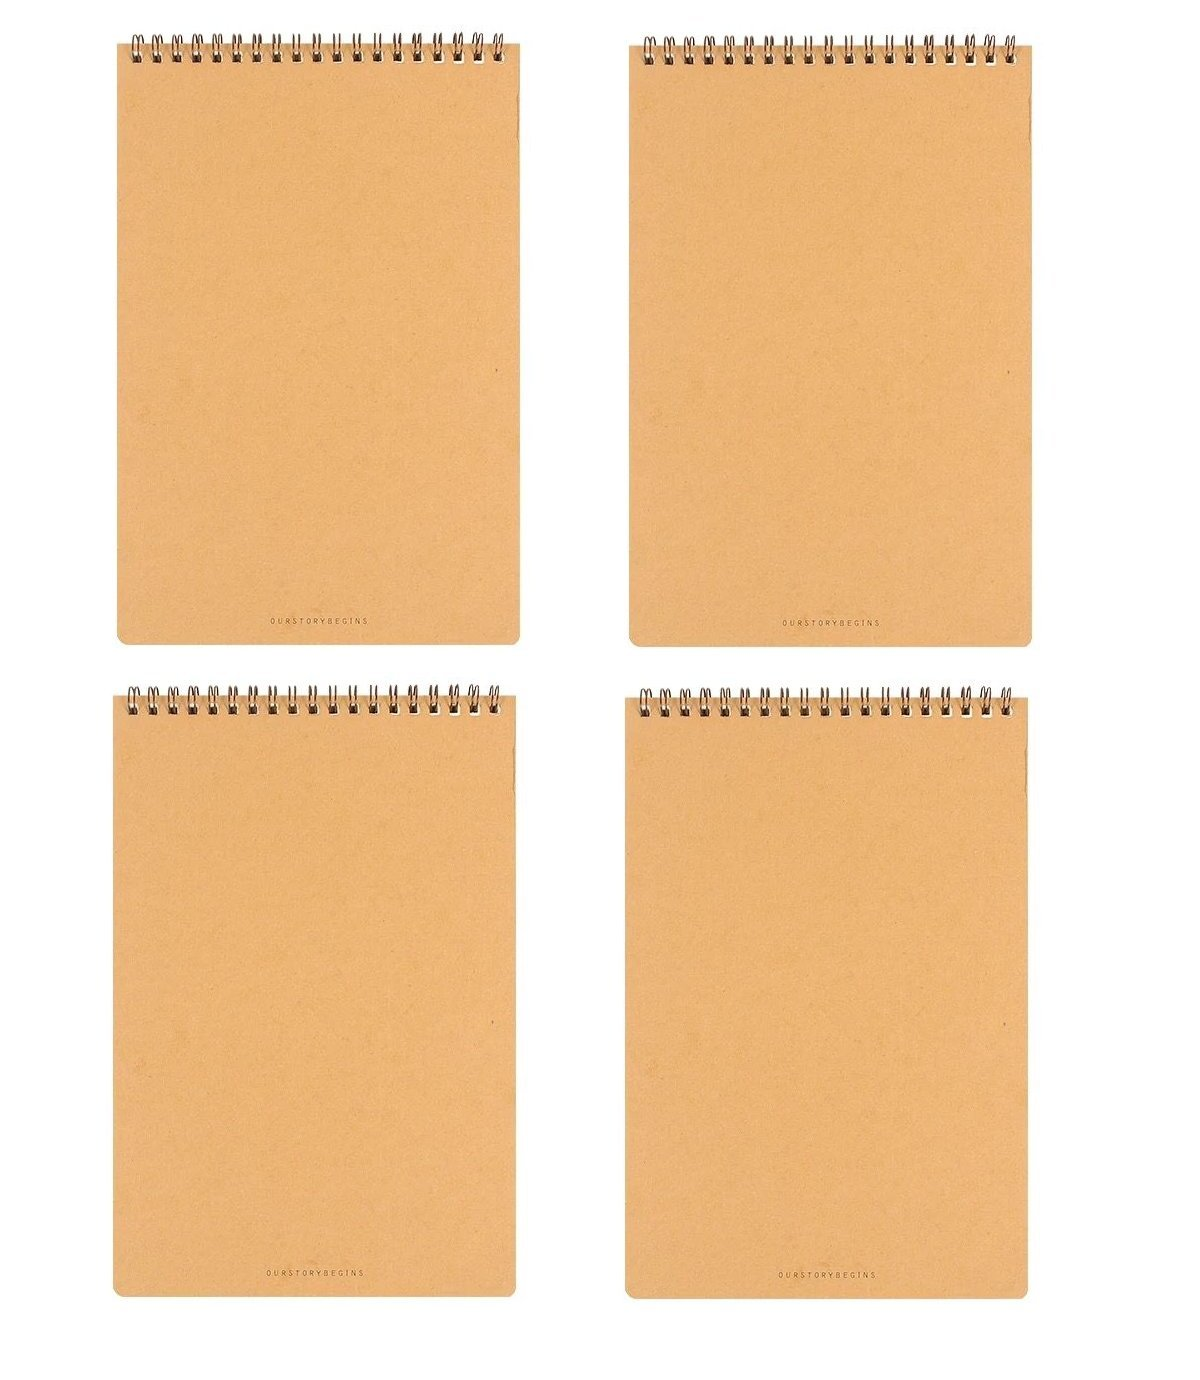 Chris.W Spiral Steno Notebook Writing Pads for Journalists, Reporters and Interpreters - Set of 4 Books - 5.5 x 8.25 Inch - Ruled(Kraft Cover)